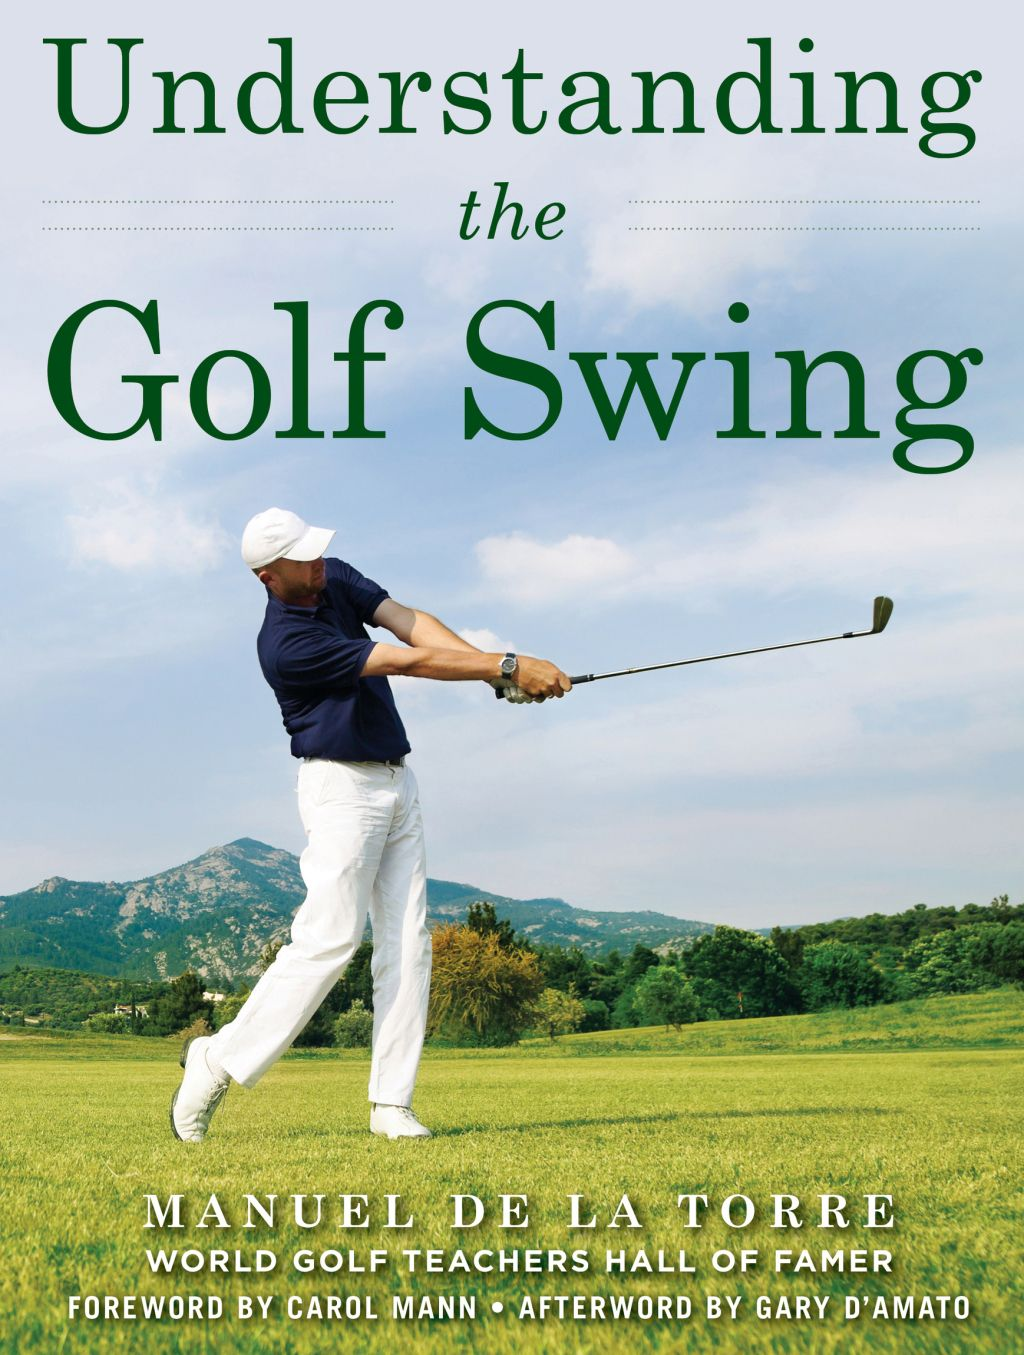 How To Golf Swing – Tips For Developing A Great Shaft